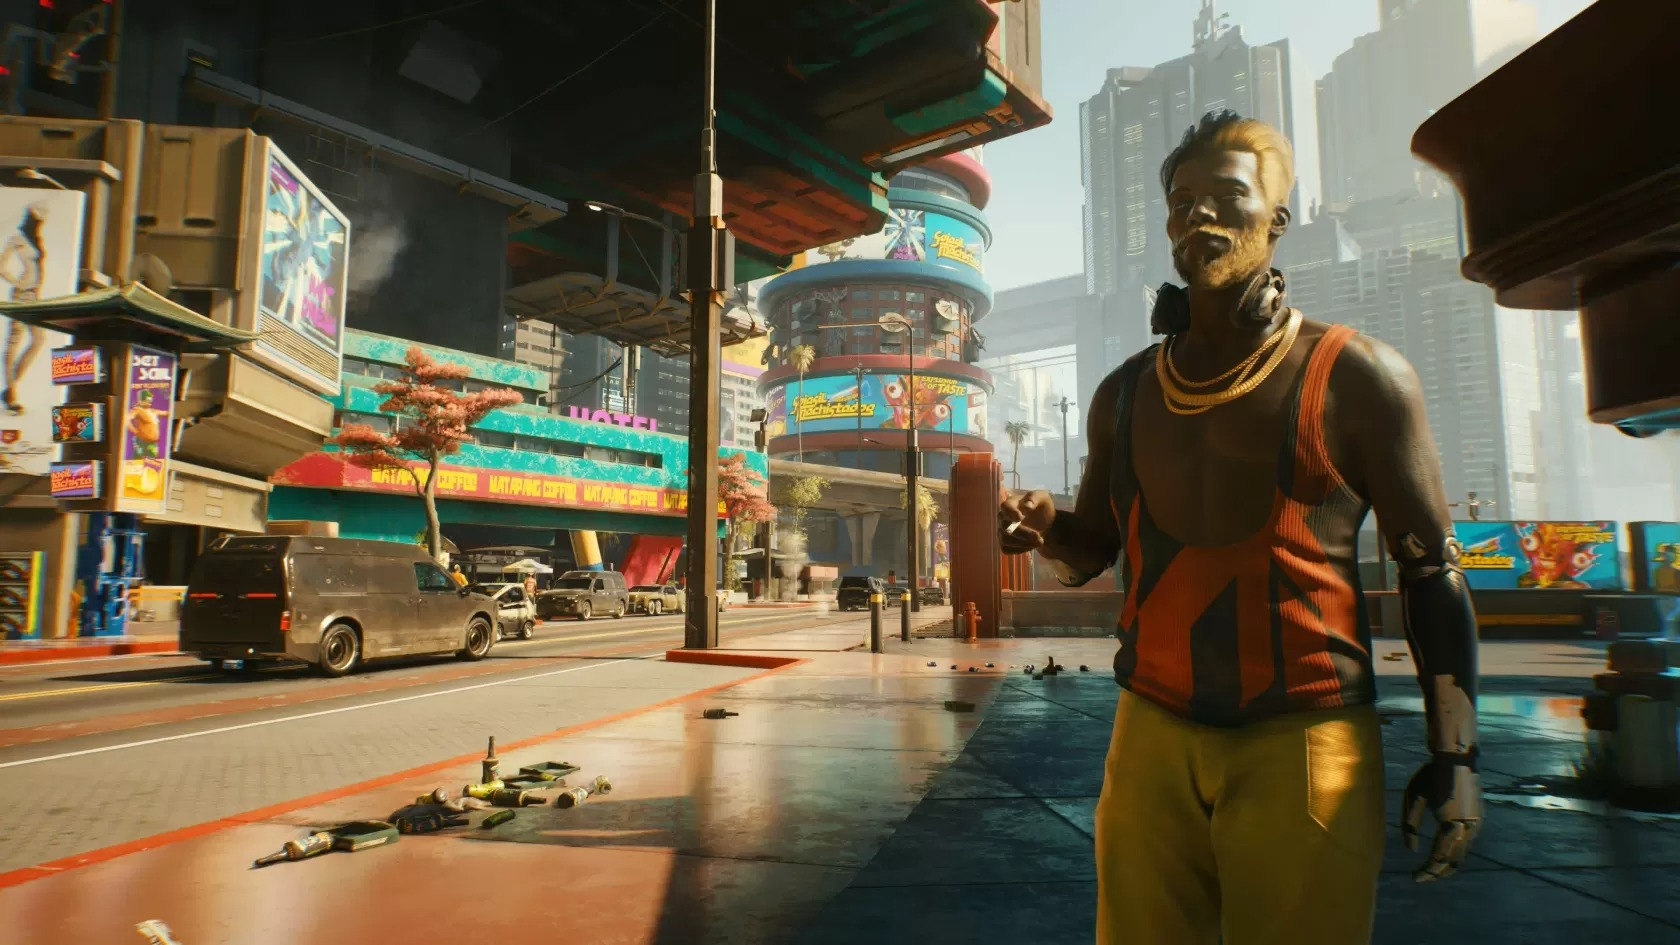 Cyberpunk 2077 was ready to go on PC and next-gen, but current-gen consoles delayed release